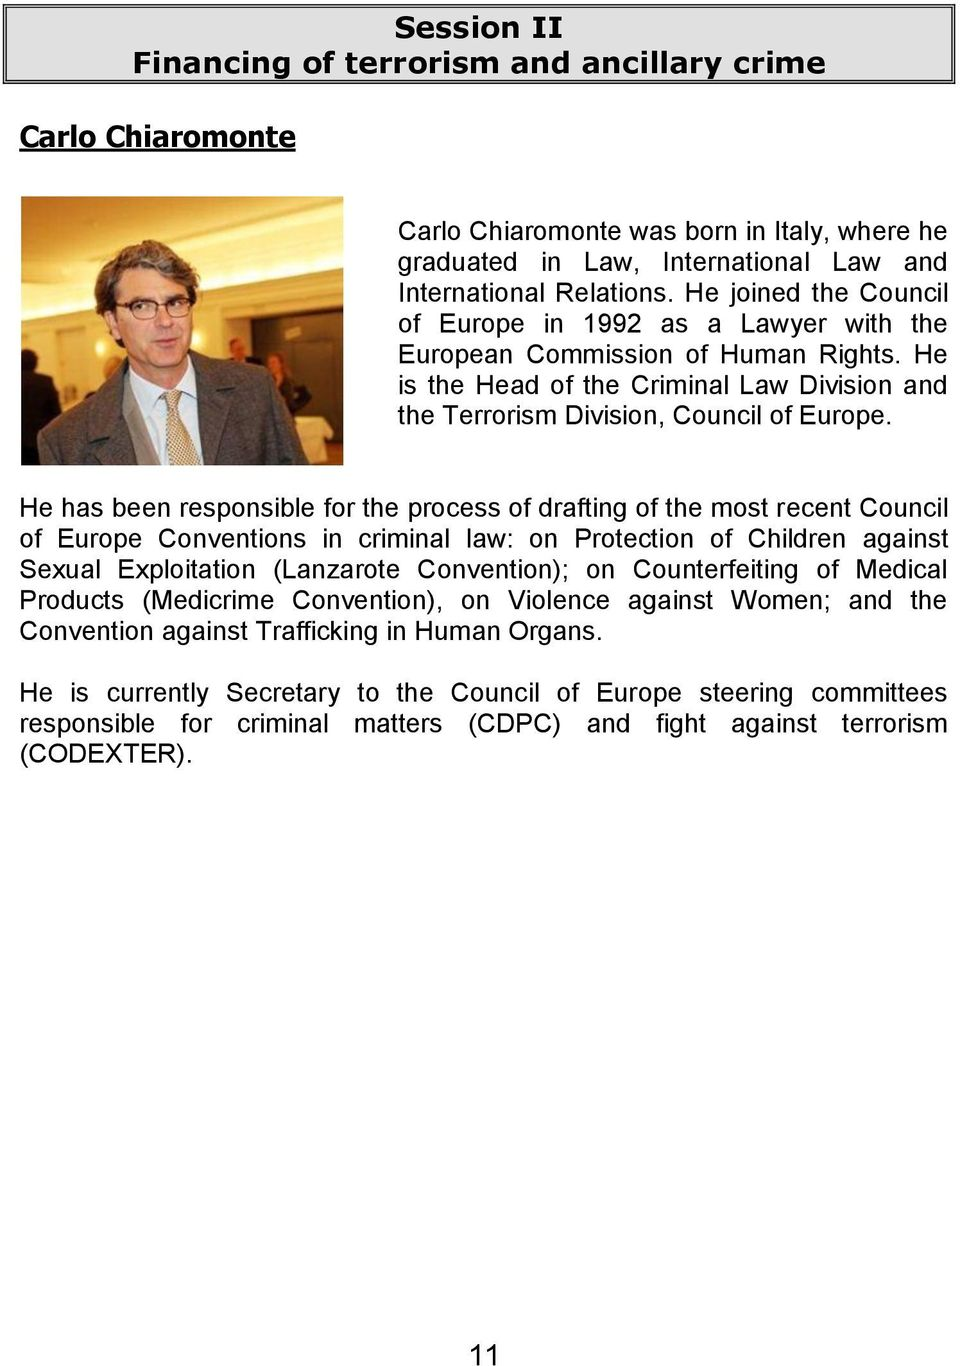 He has been responsible for the process of drafting of the most recent Council of Europe Conventions in criminal law: on Protection of Children against Sexual Exploitation (Lanzarote Convention); on